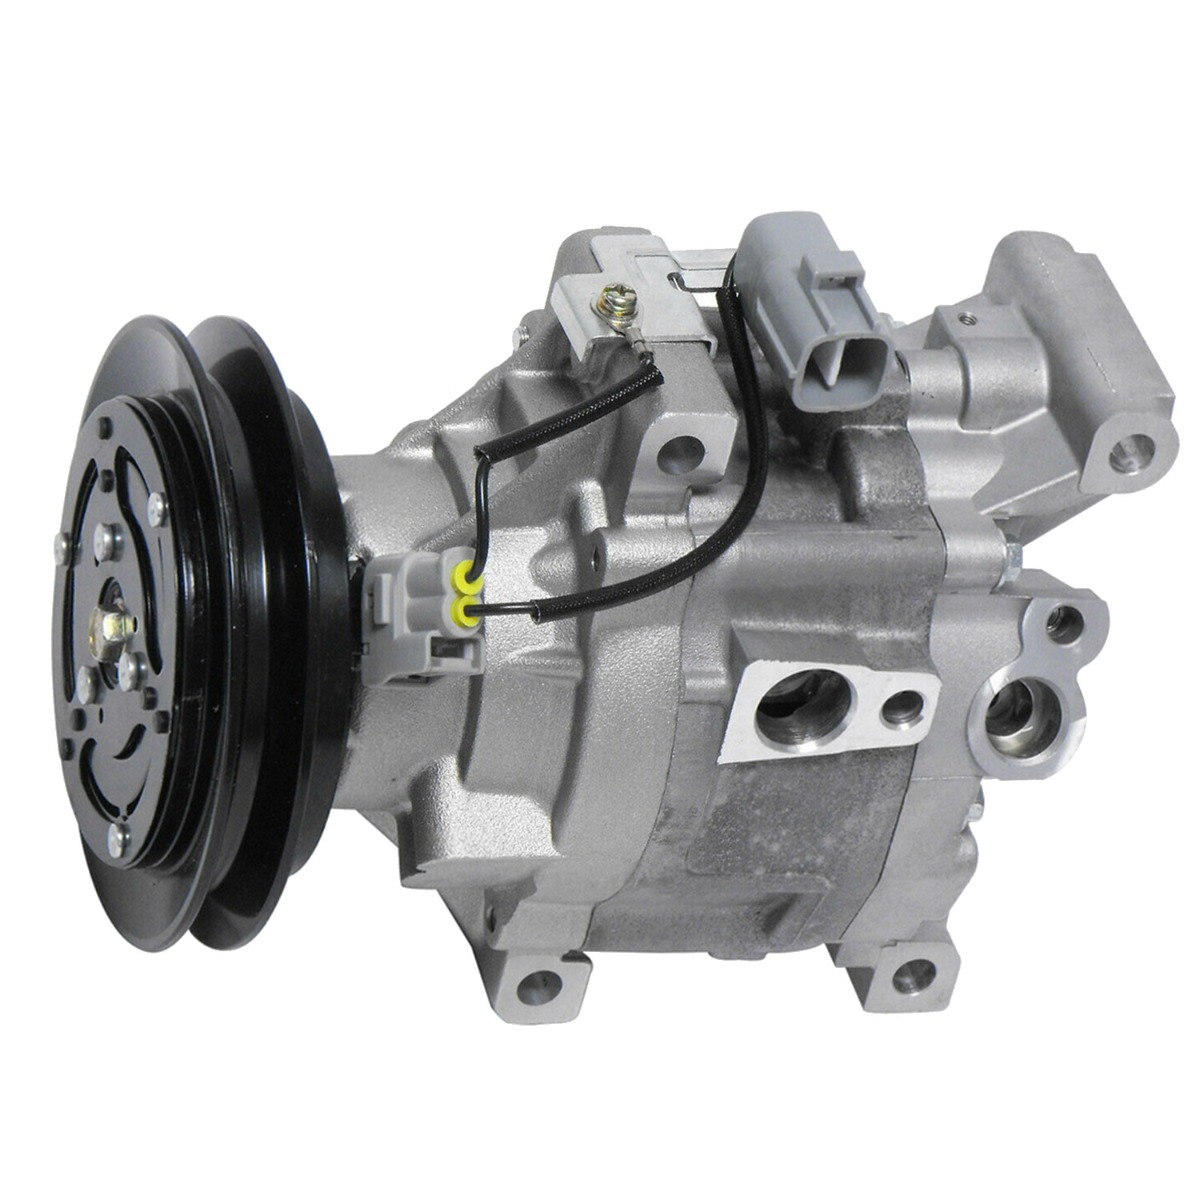 Air Conditioning Compressor 6A671-97110 12V Compatible with Kubota Tractor M125XDTC M-120FC M-120DTC M-110FC M108XDTC M105XDTC M105SDT-CAB-CAN